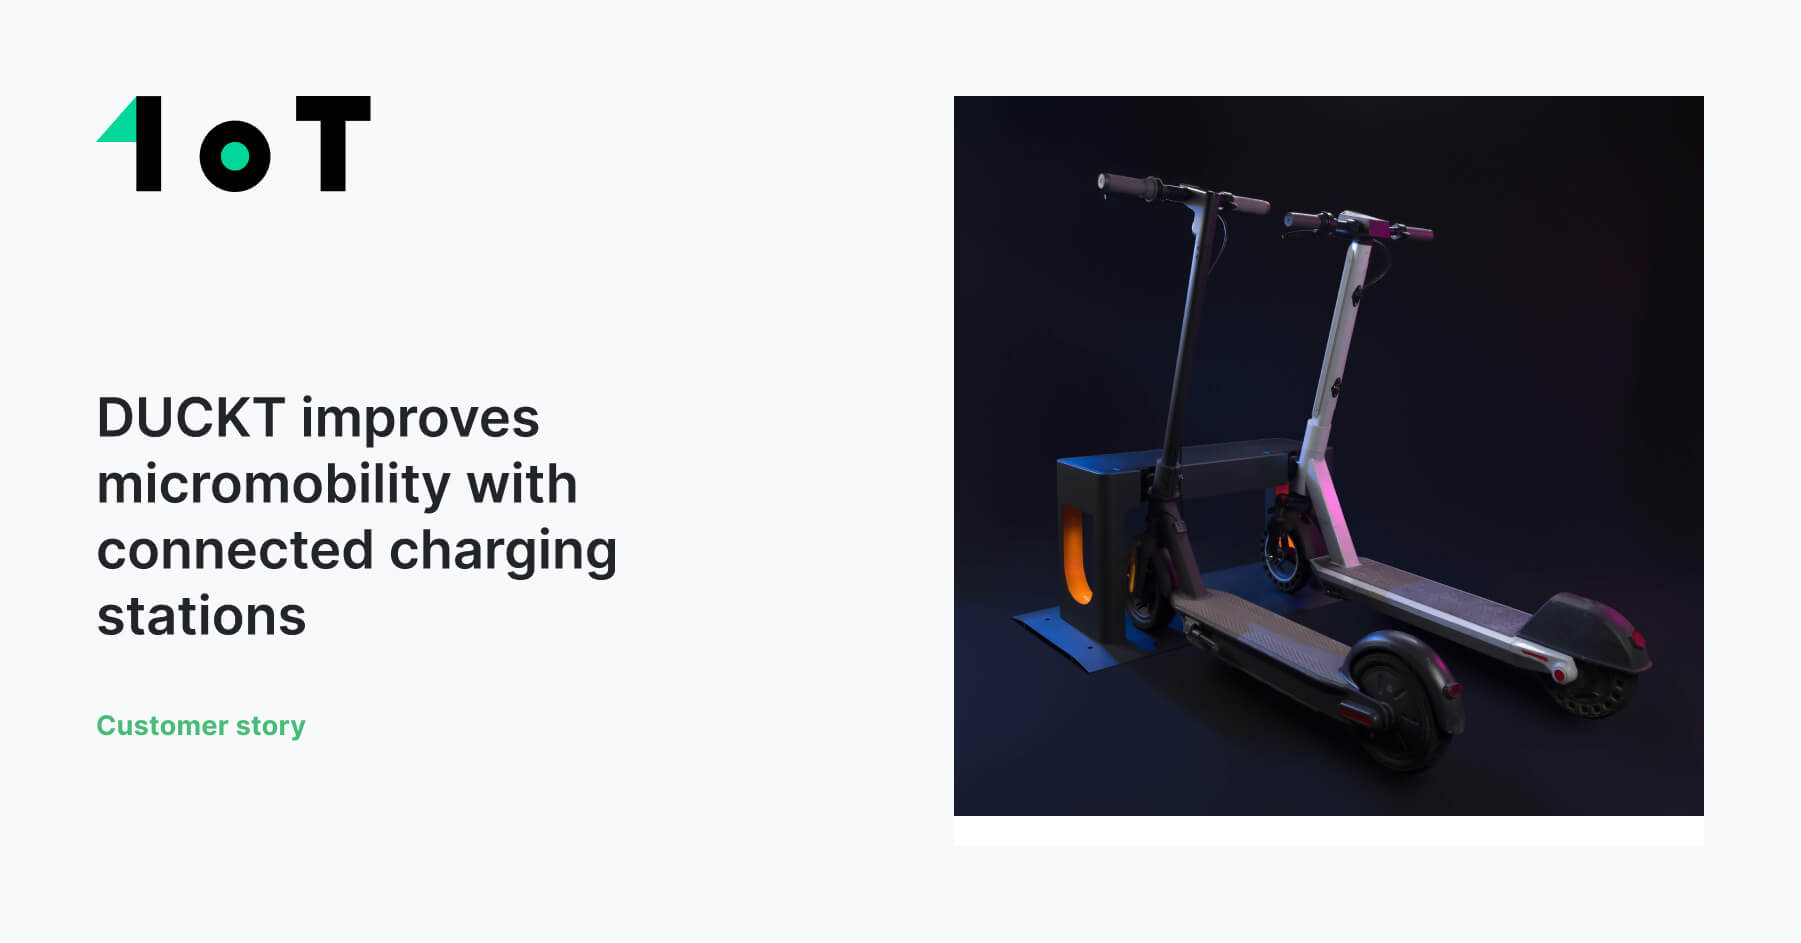 Article cover image for DUCKT improves micromobility with connected charging stations